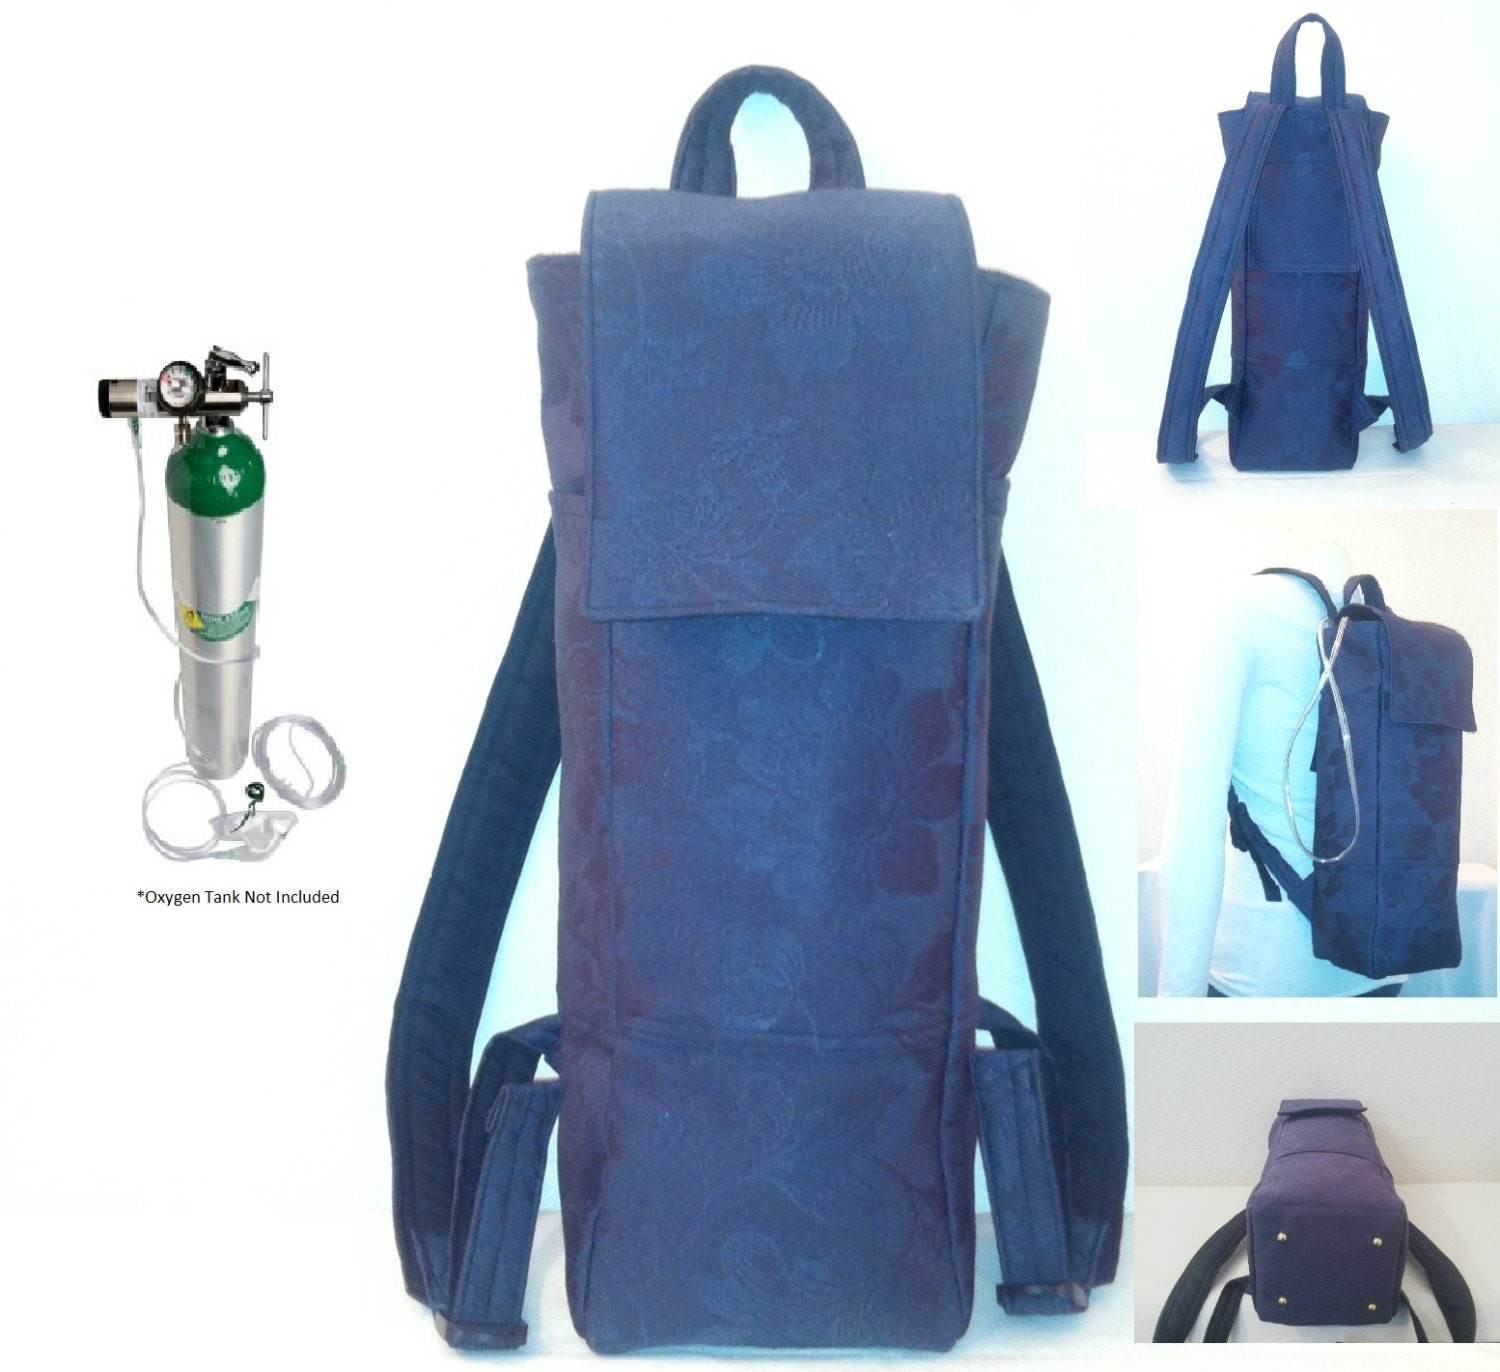 Portable Oxygen Tank Backpack A Custom Made Designer By